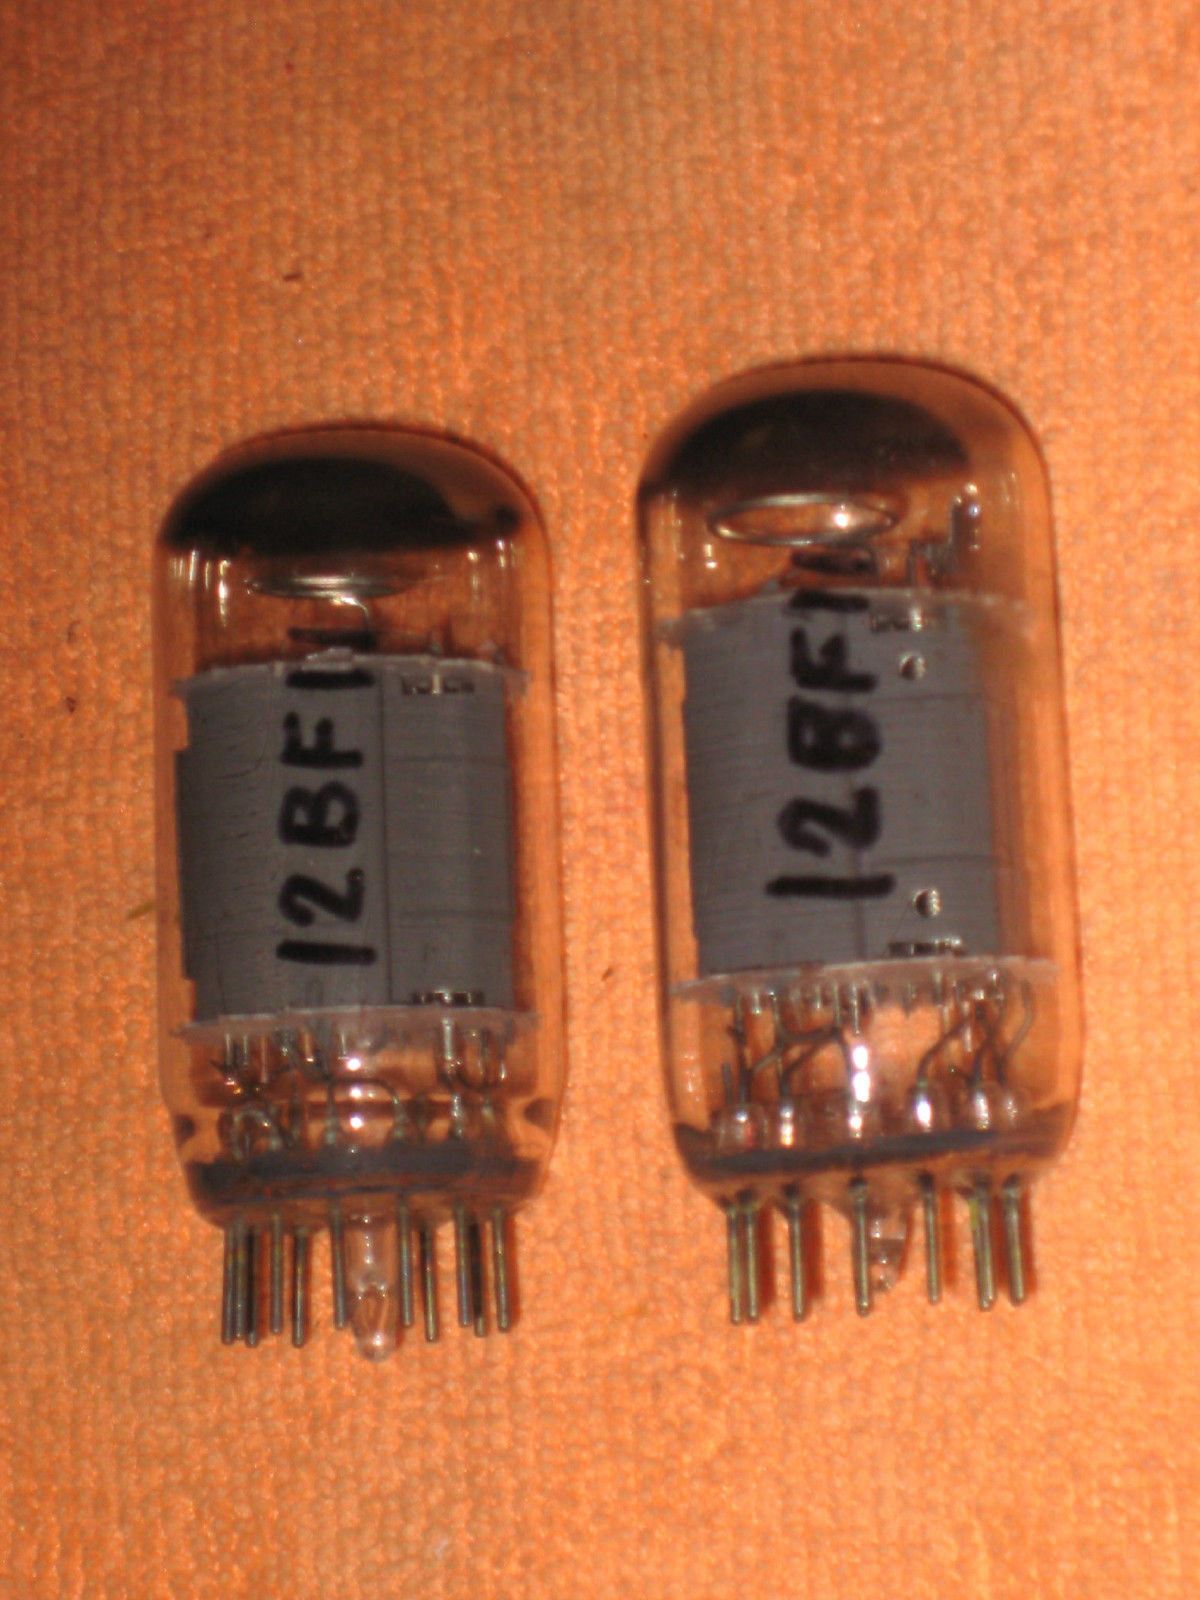 Vintage Radio Vacuum Tube (one): 12BF11 - Tested Good